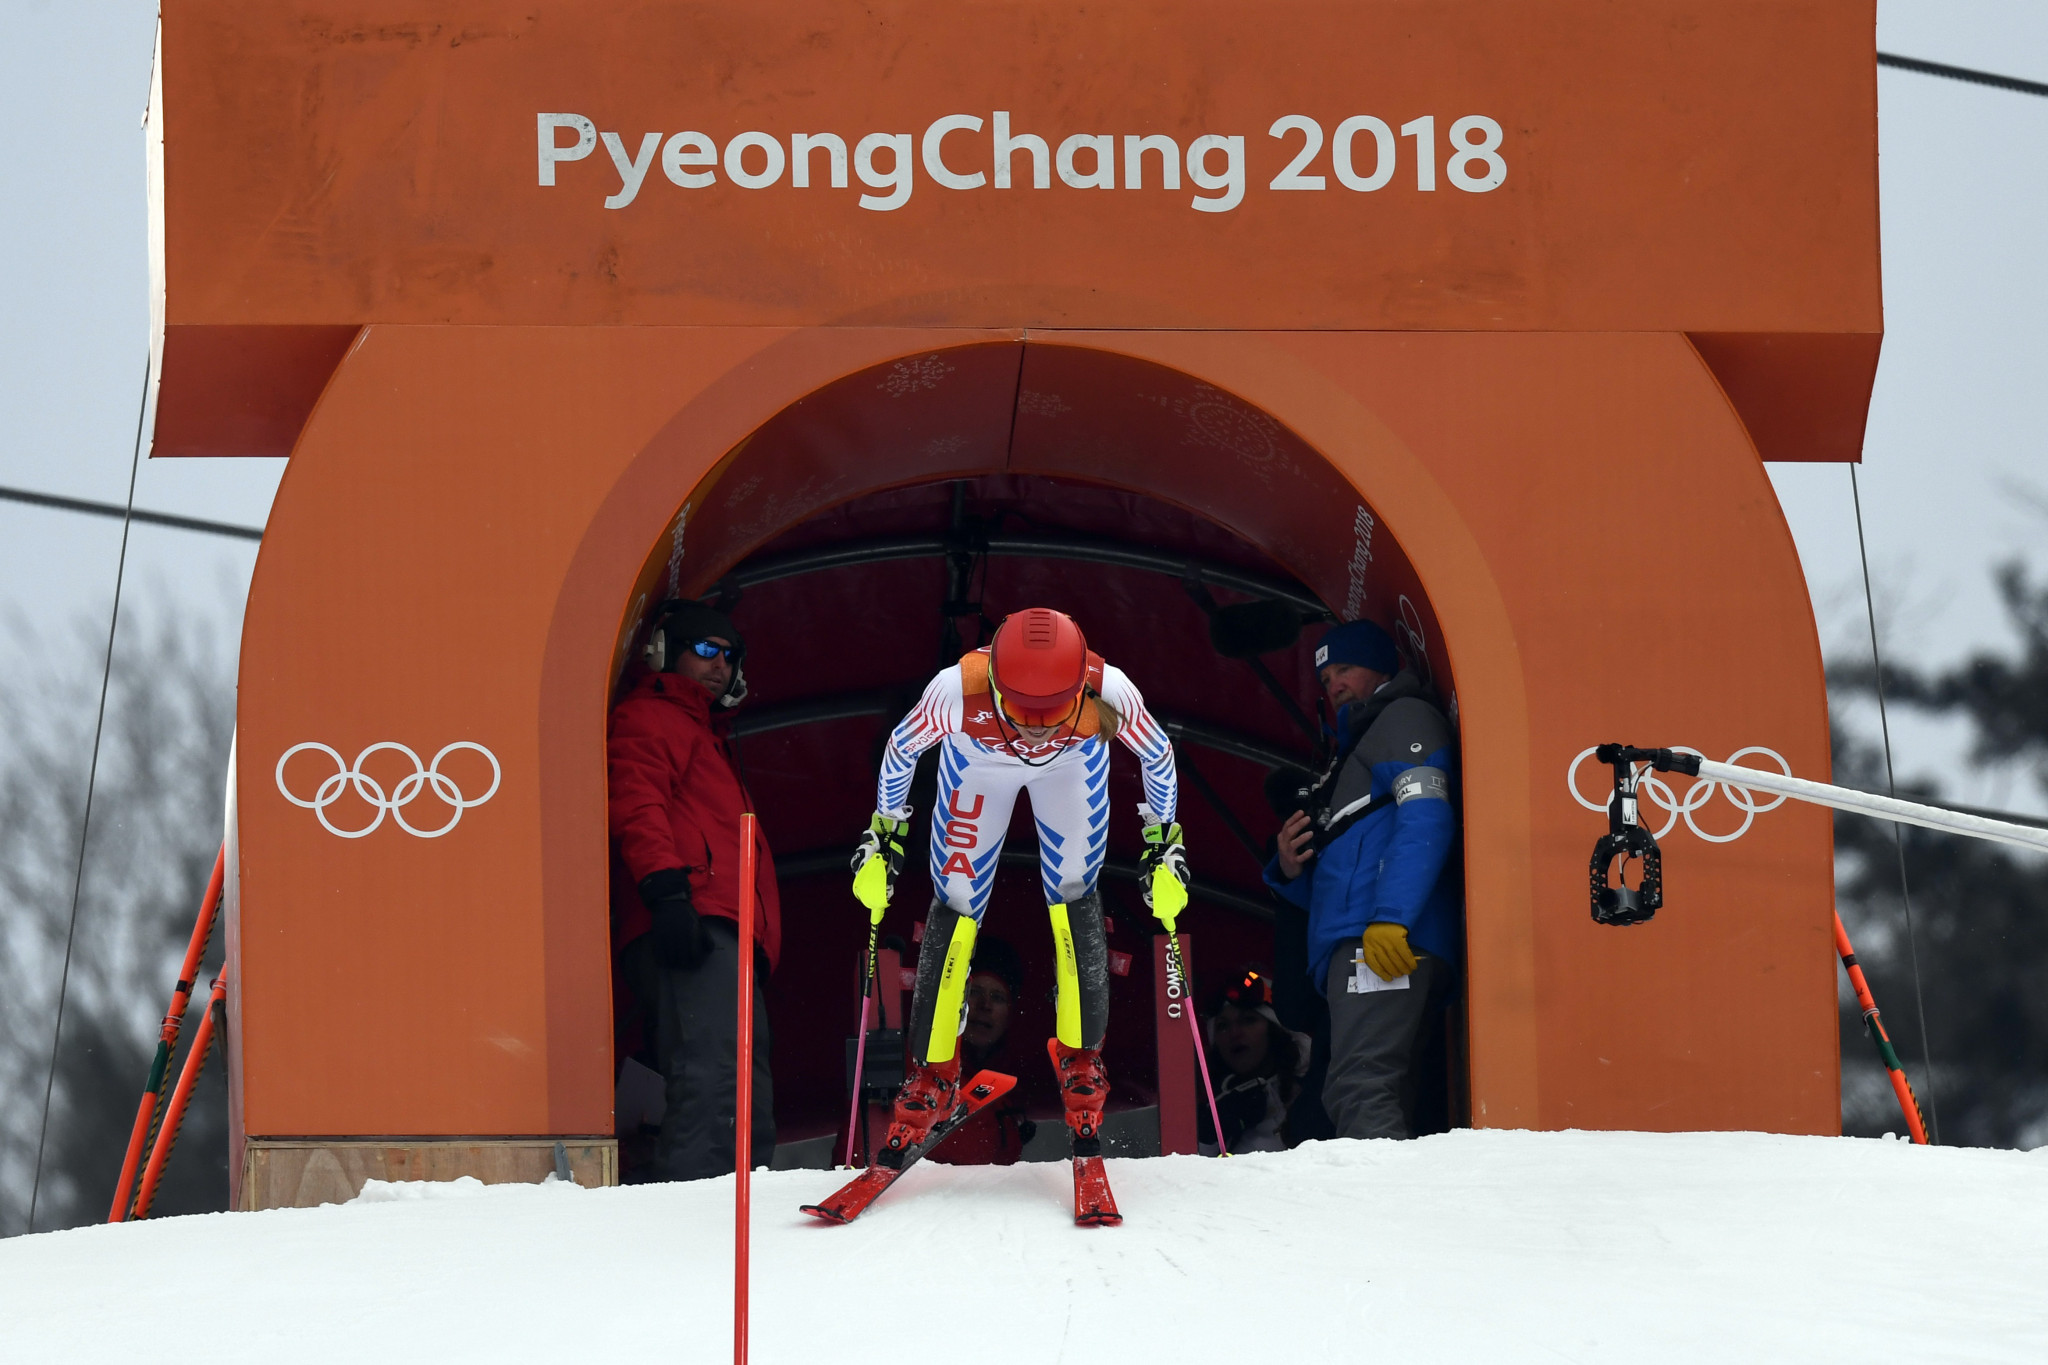 Eo Jae-suk acted as an Alpine skiing commentator at the Pyeongchang 2018 Winter Olympic Games ©Getty Images